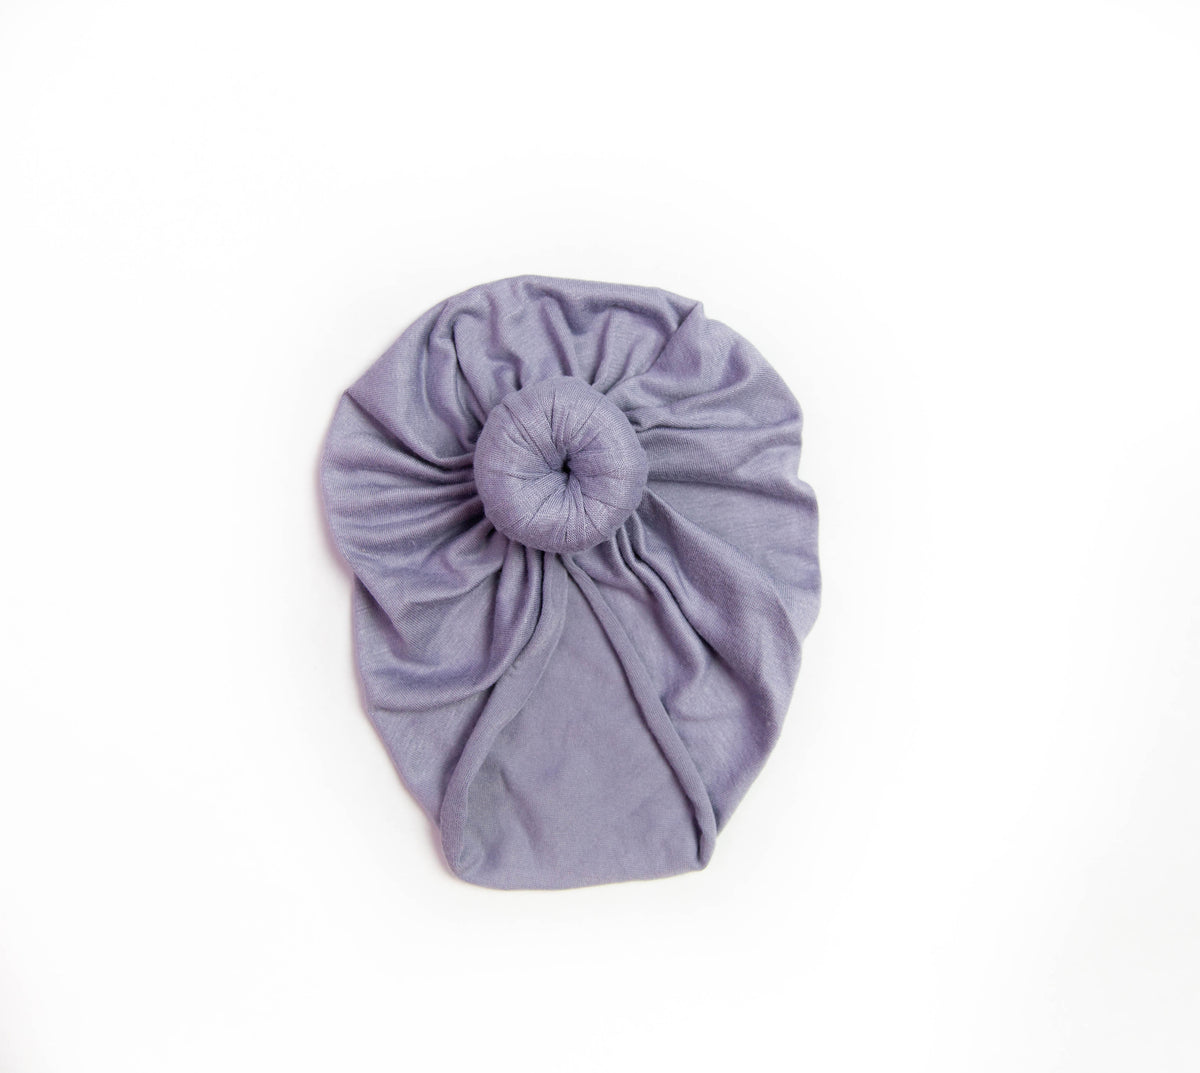 Dusty Purple Headwrap Turban | Knit Headwrap